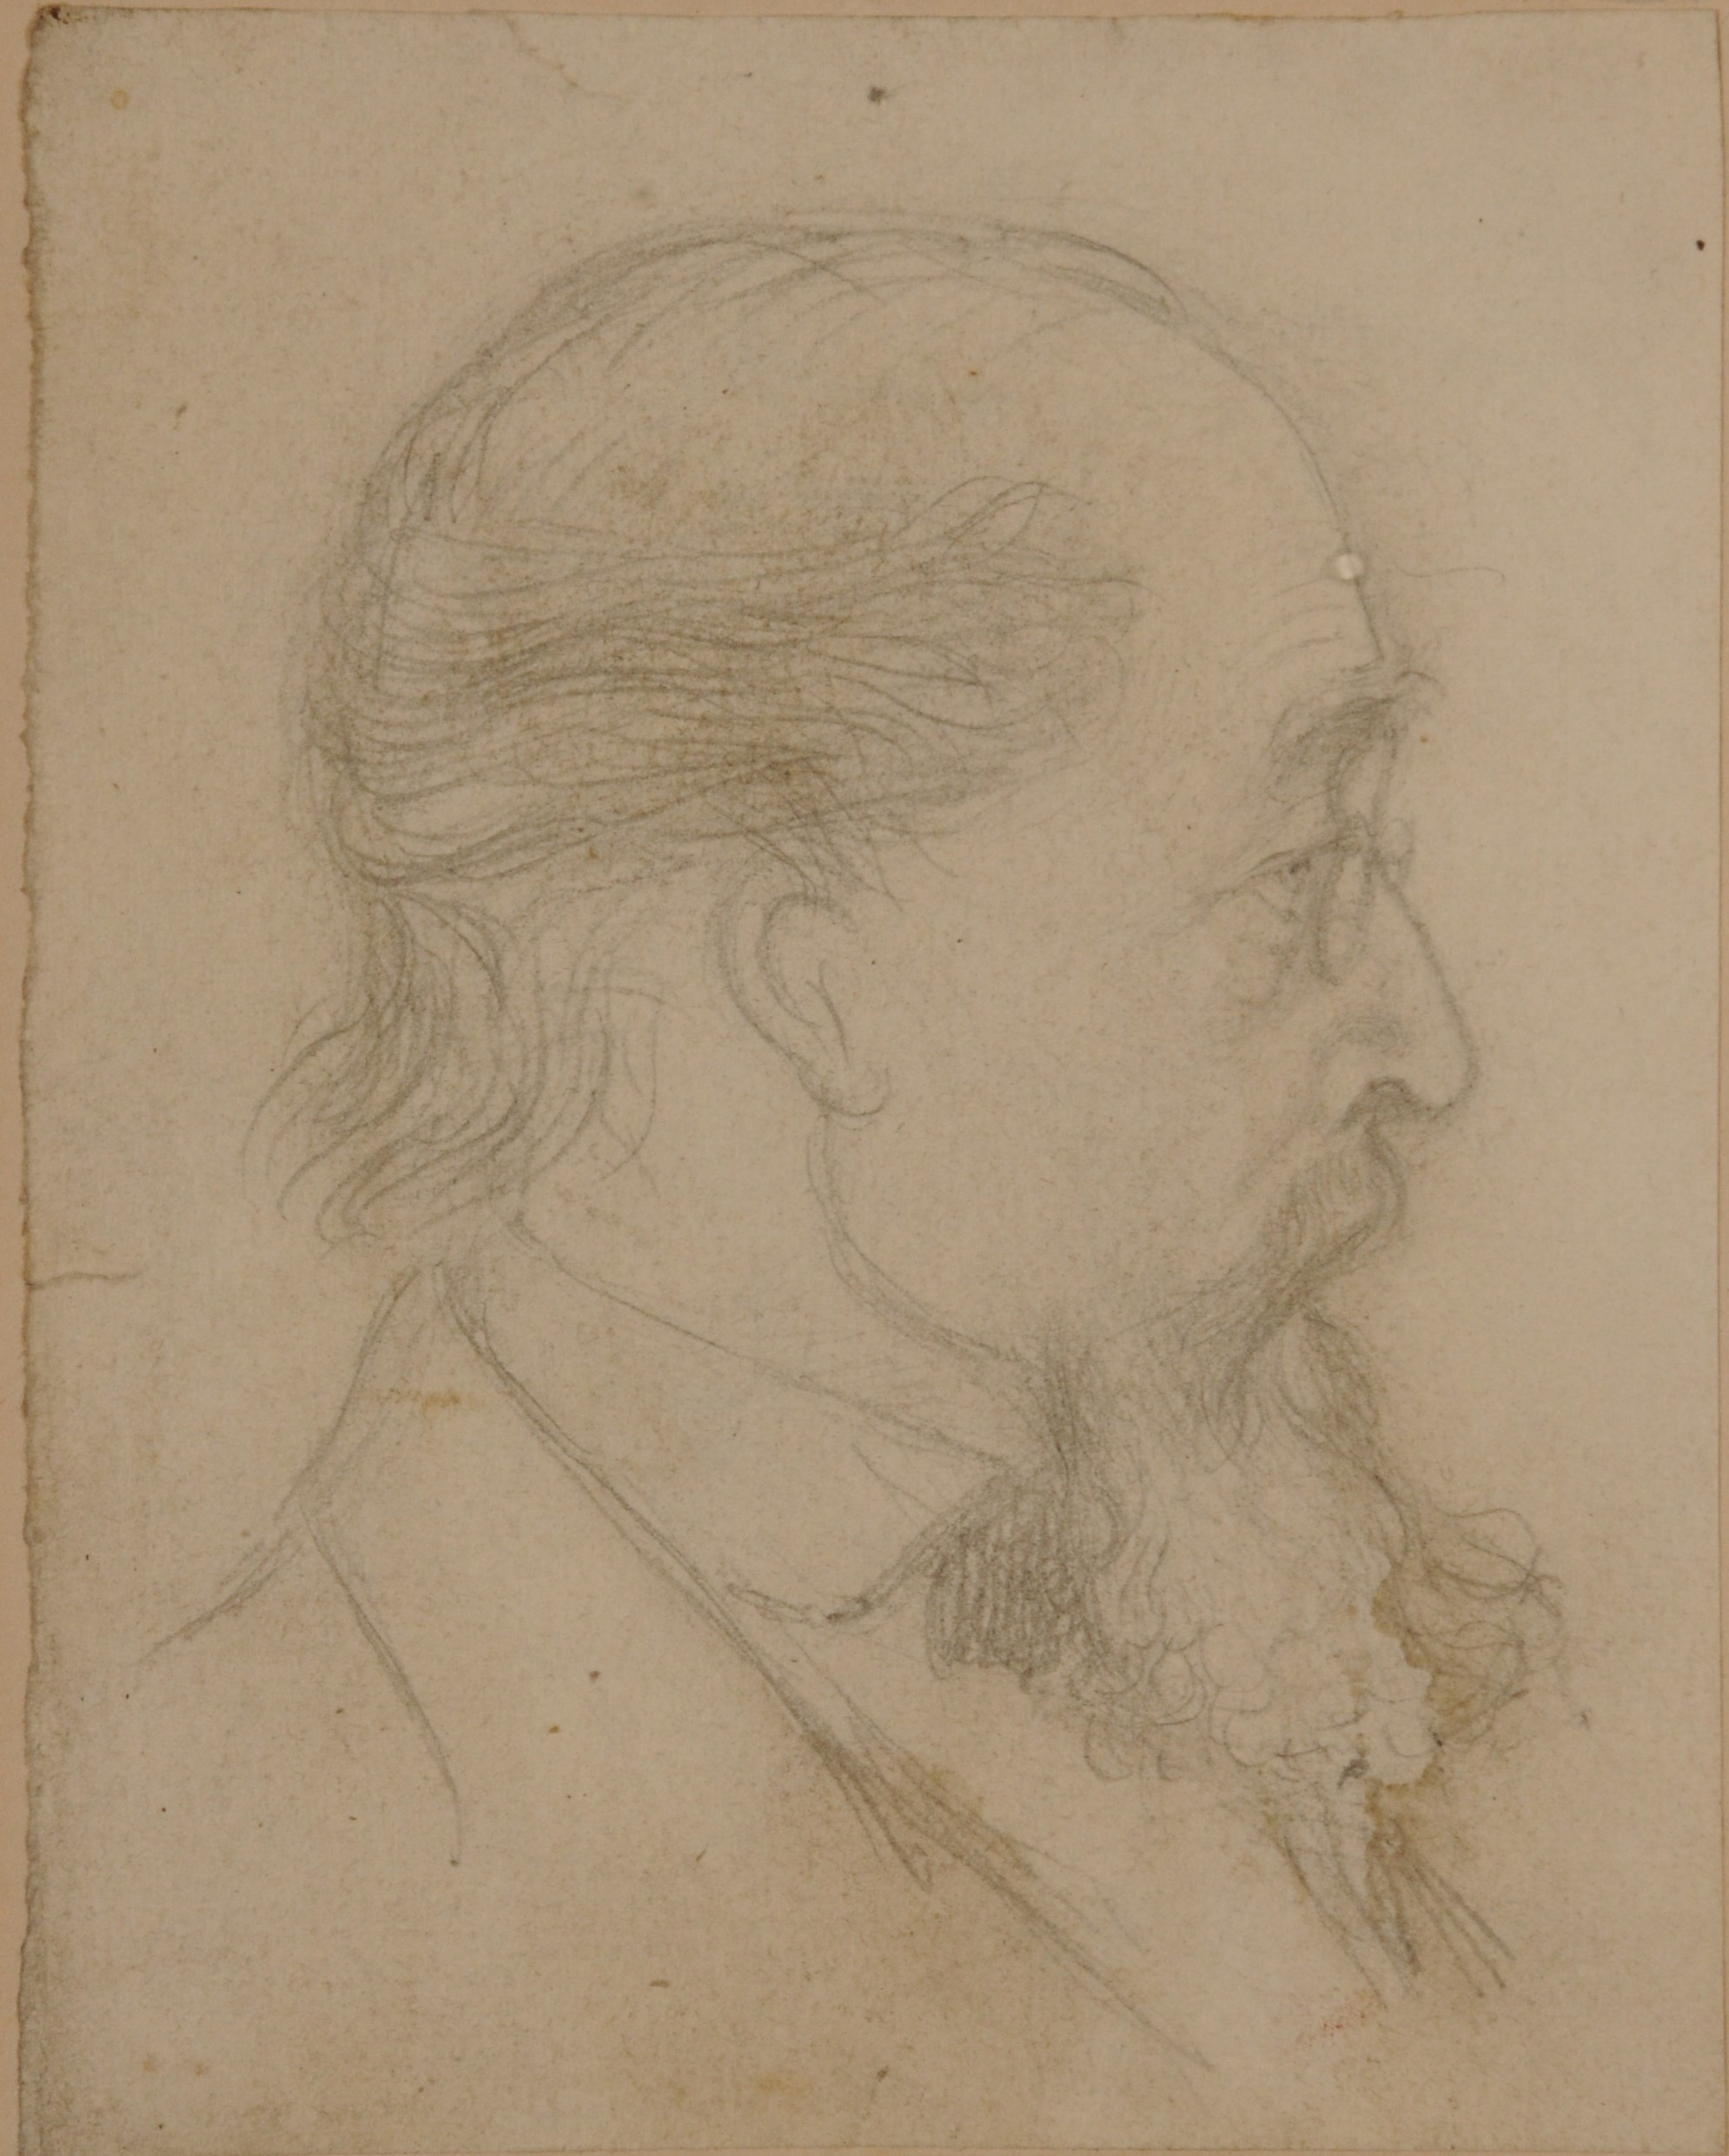 side in sketch of a man wearing spectacles with a big bushy beard